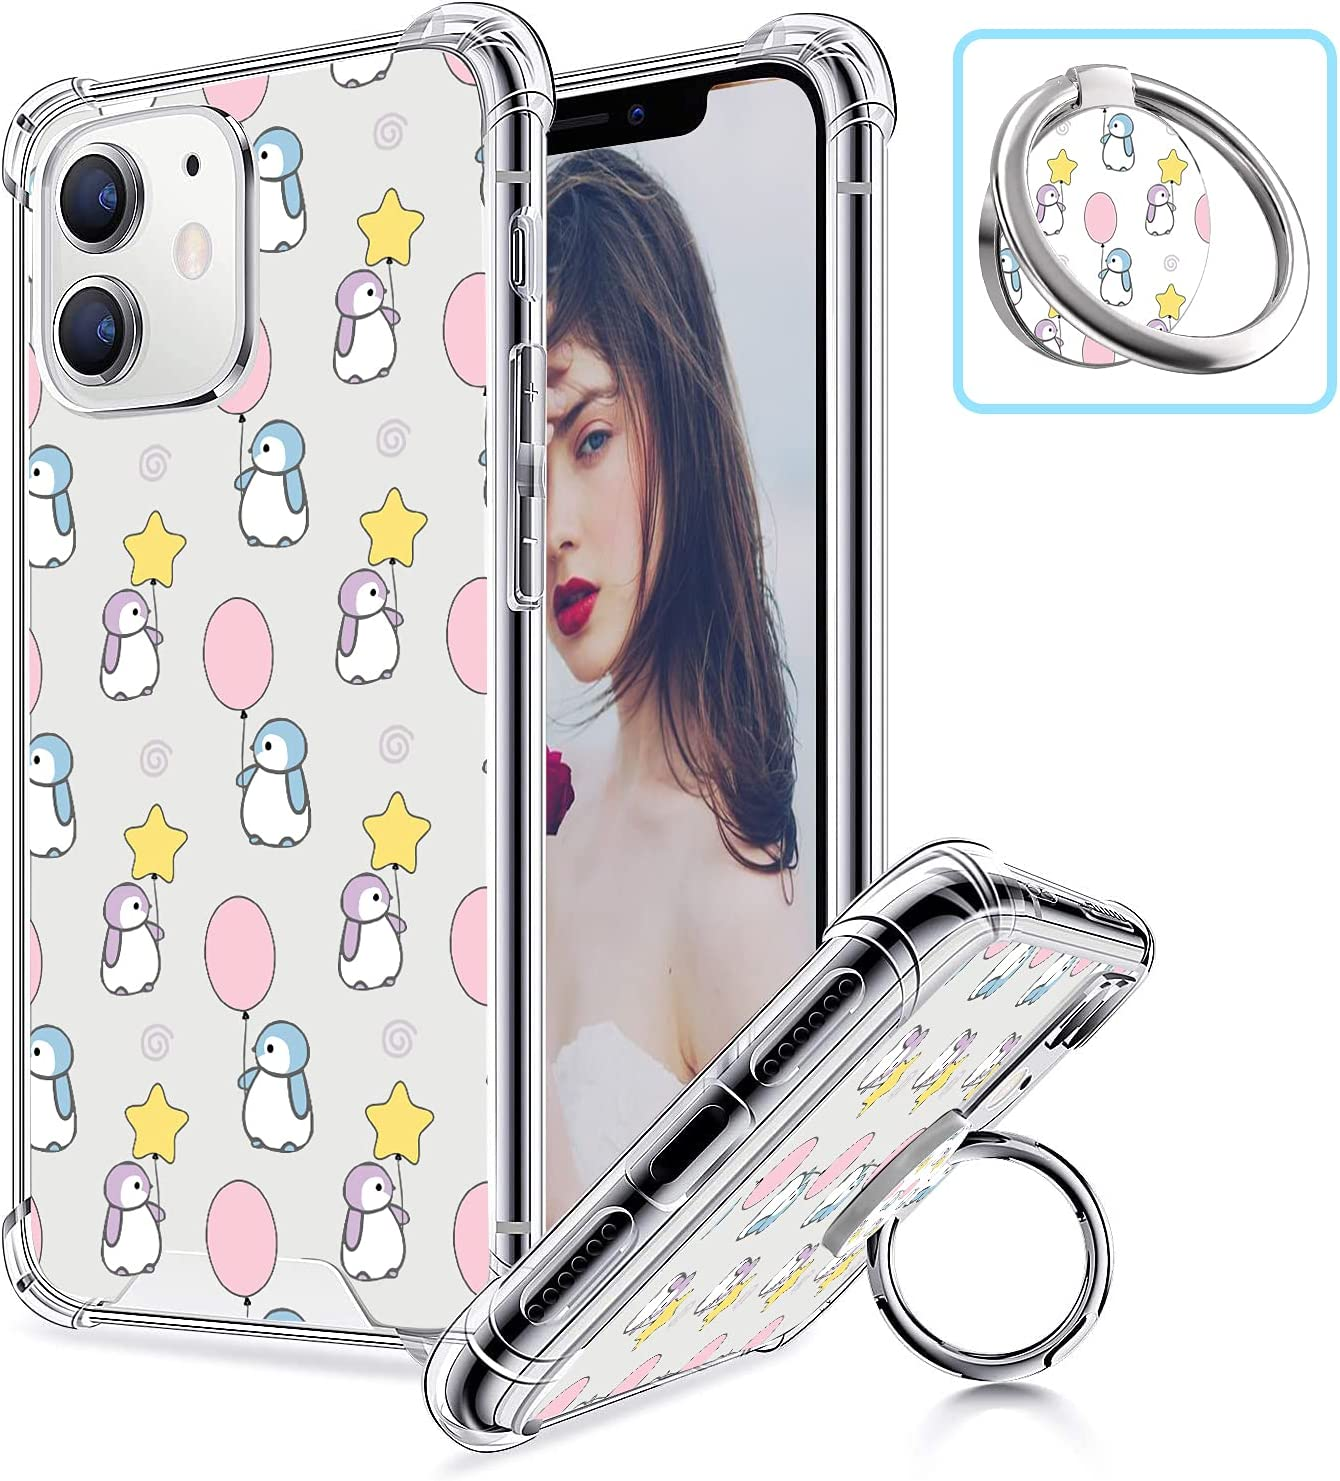 Creforkial Cute Balloon Penguin Phone Case for iPhone 11 with Ring Holder [ Back Case + Four Corner Reinforced Shockproof + Bumper Protective ] Clear Mobile Phone Cover with Design with Stand